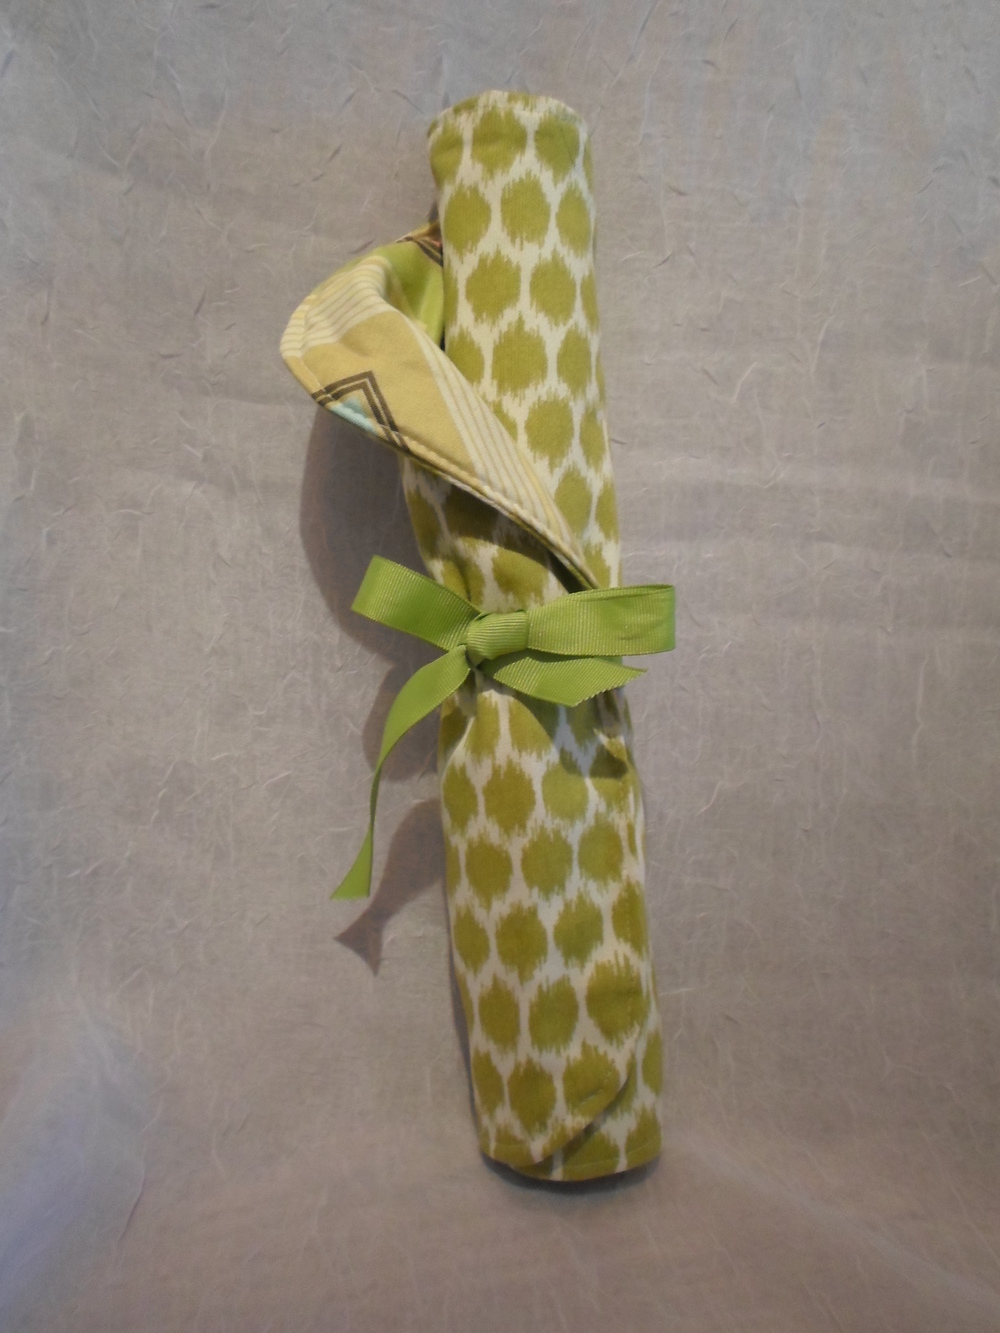 Cloth Changing Pad - Locally Handmade   $22    Wants 1 PURCHASED